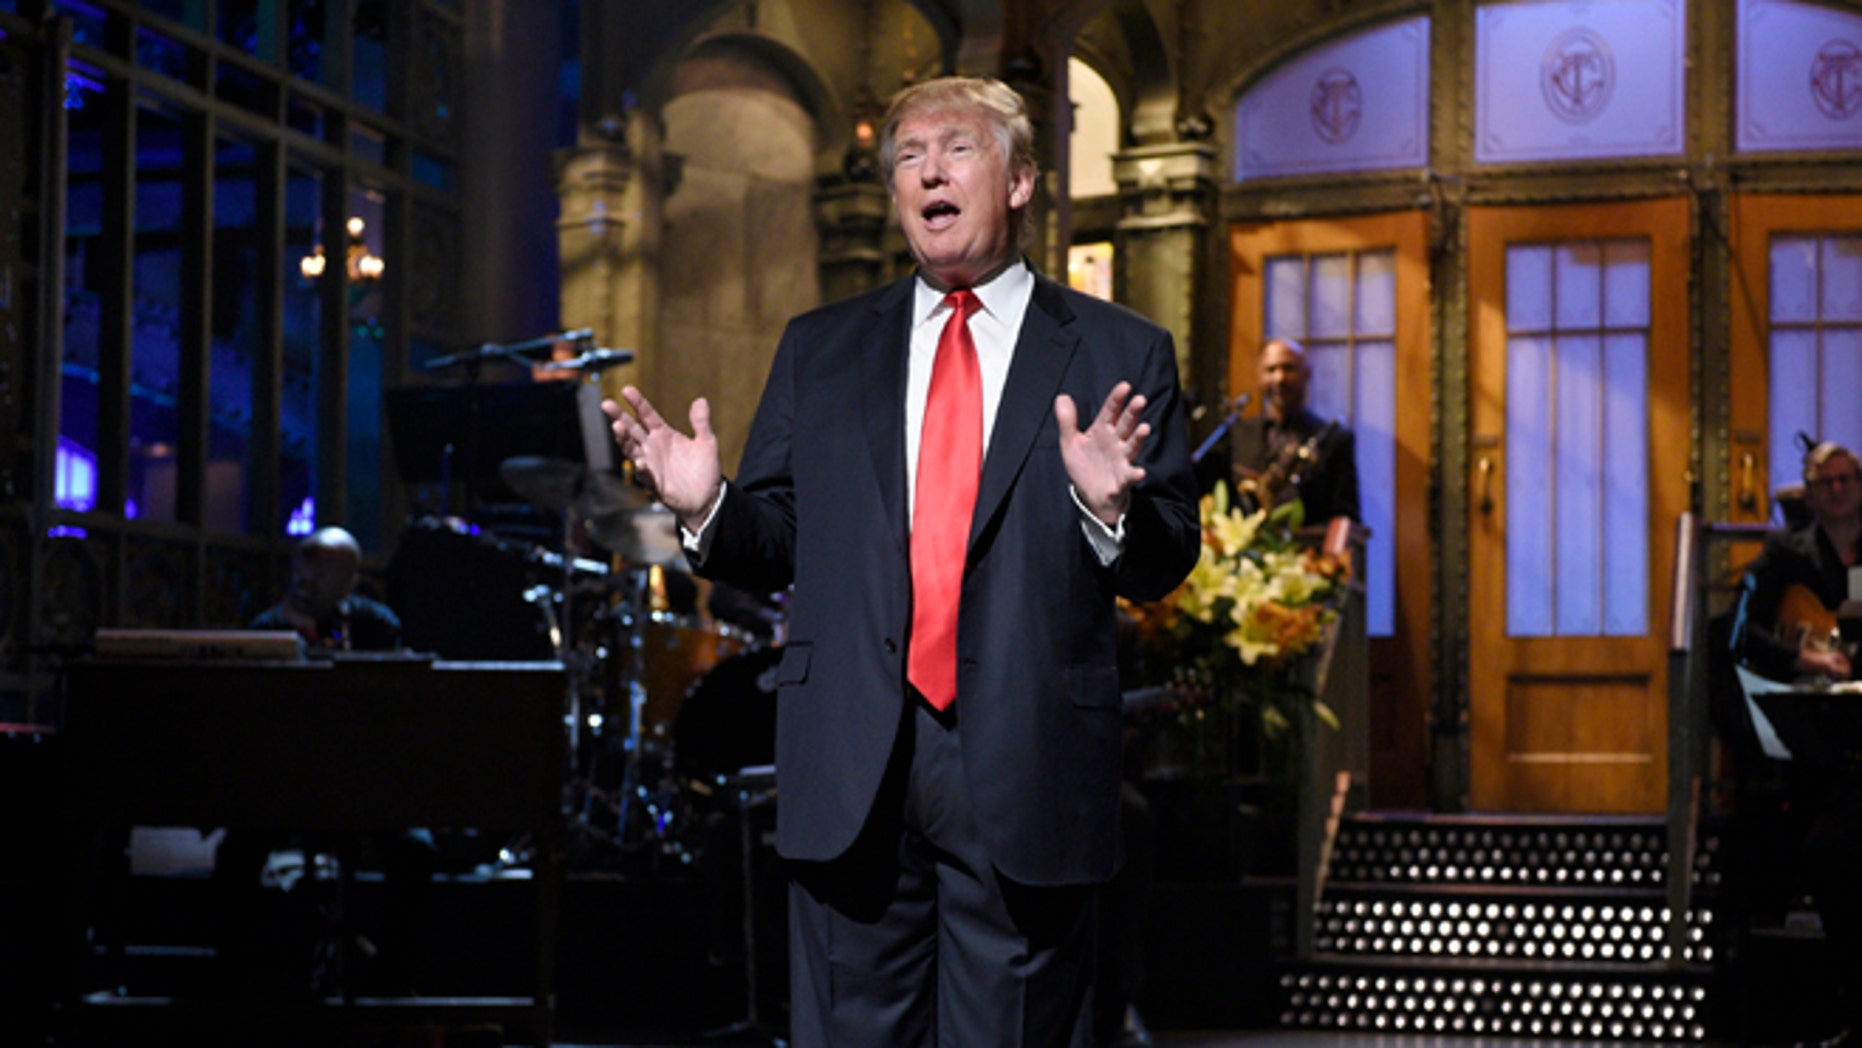 """Republican presidential candidate Donald Trump speaks as guest host during the monologue on """"Saturday Night Live"""", Saturday, Nov. 7, 2015. Trump's 90 minutes in the """"SNL"""" spotlight followed weeks of growing anticipation, increasingly sharp criticism and mounting calls for him to be dropped from the show.  (Dana Edelson/NBC via AP)"""